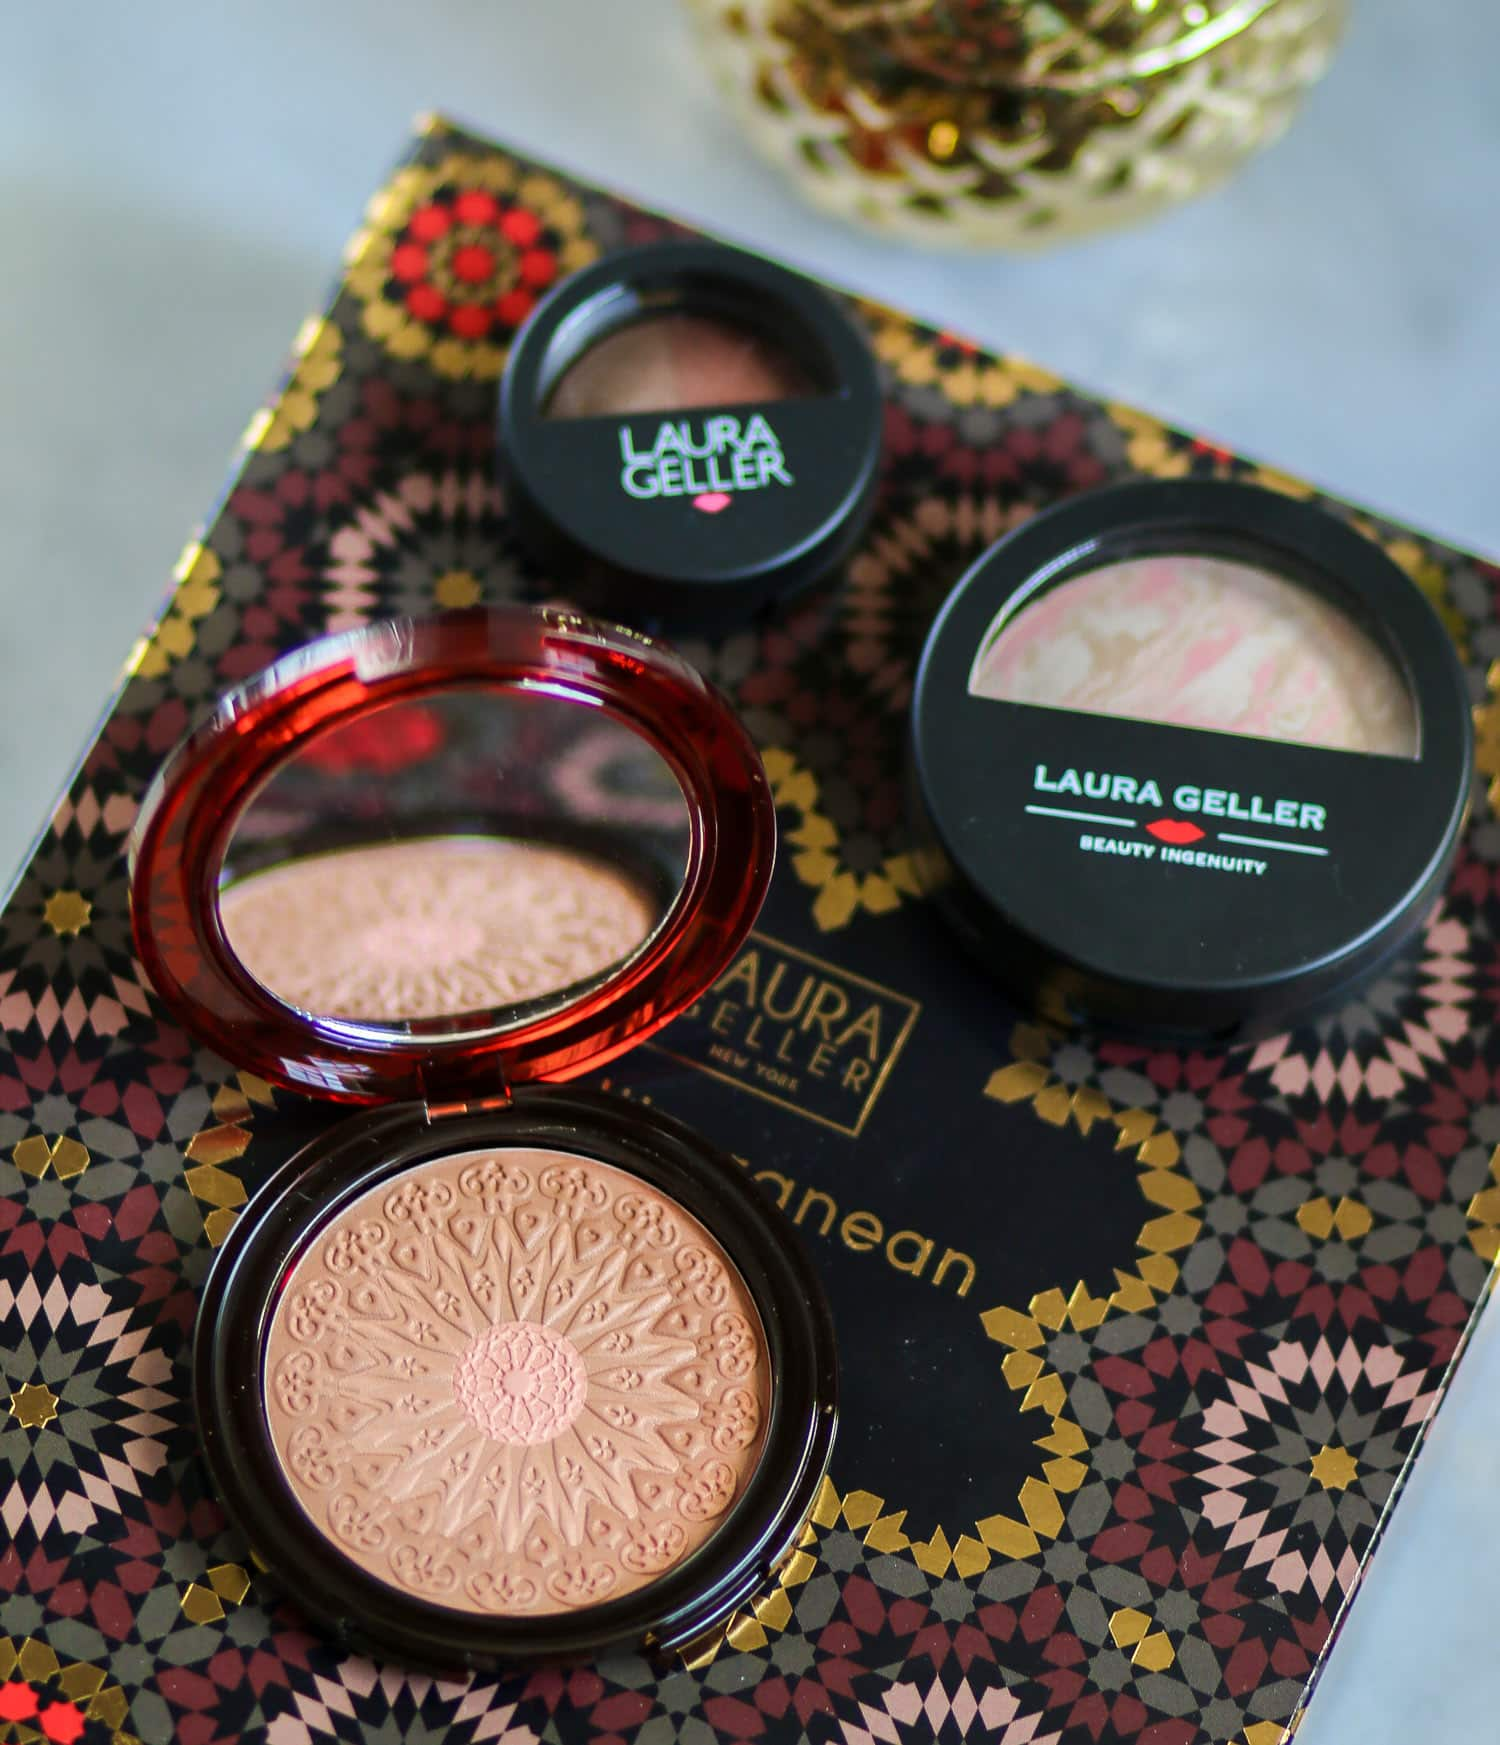 The Laura Geller Mediterranean Journey Collection Is So Beautiful Kit Includes Baked Balance